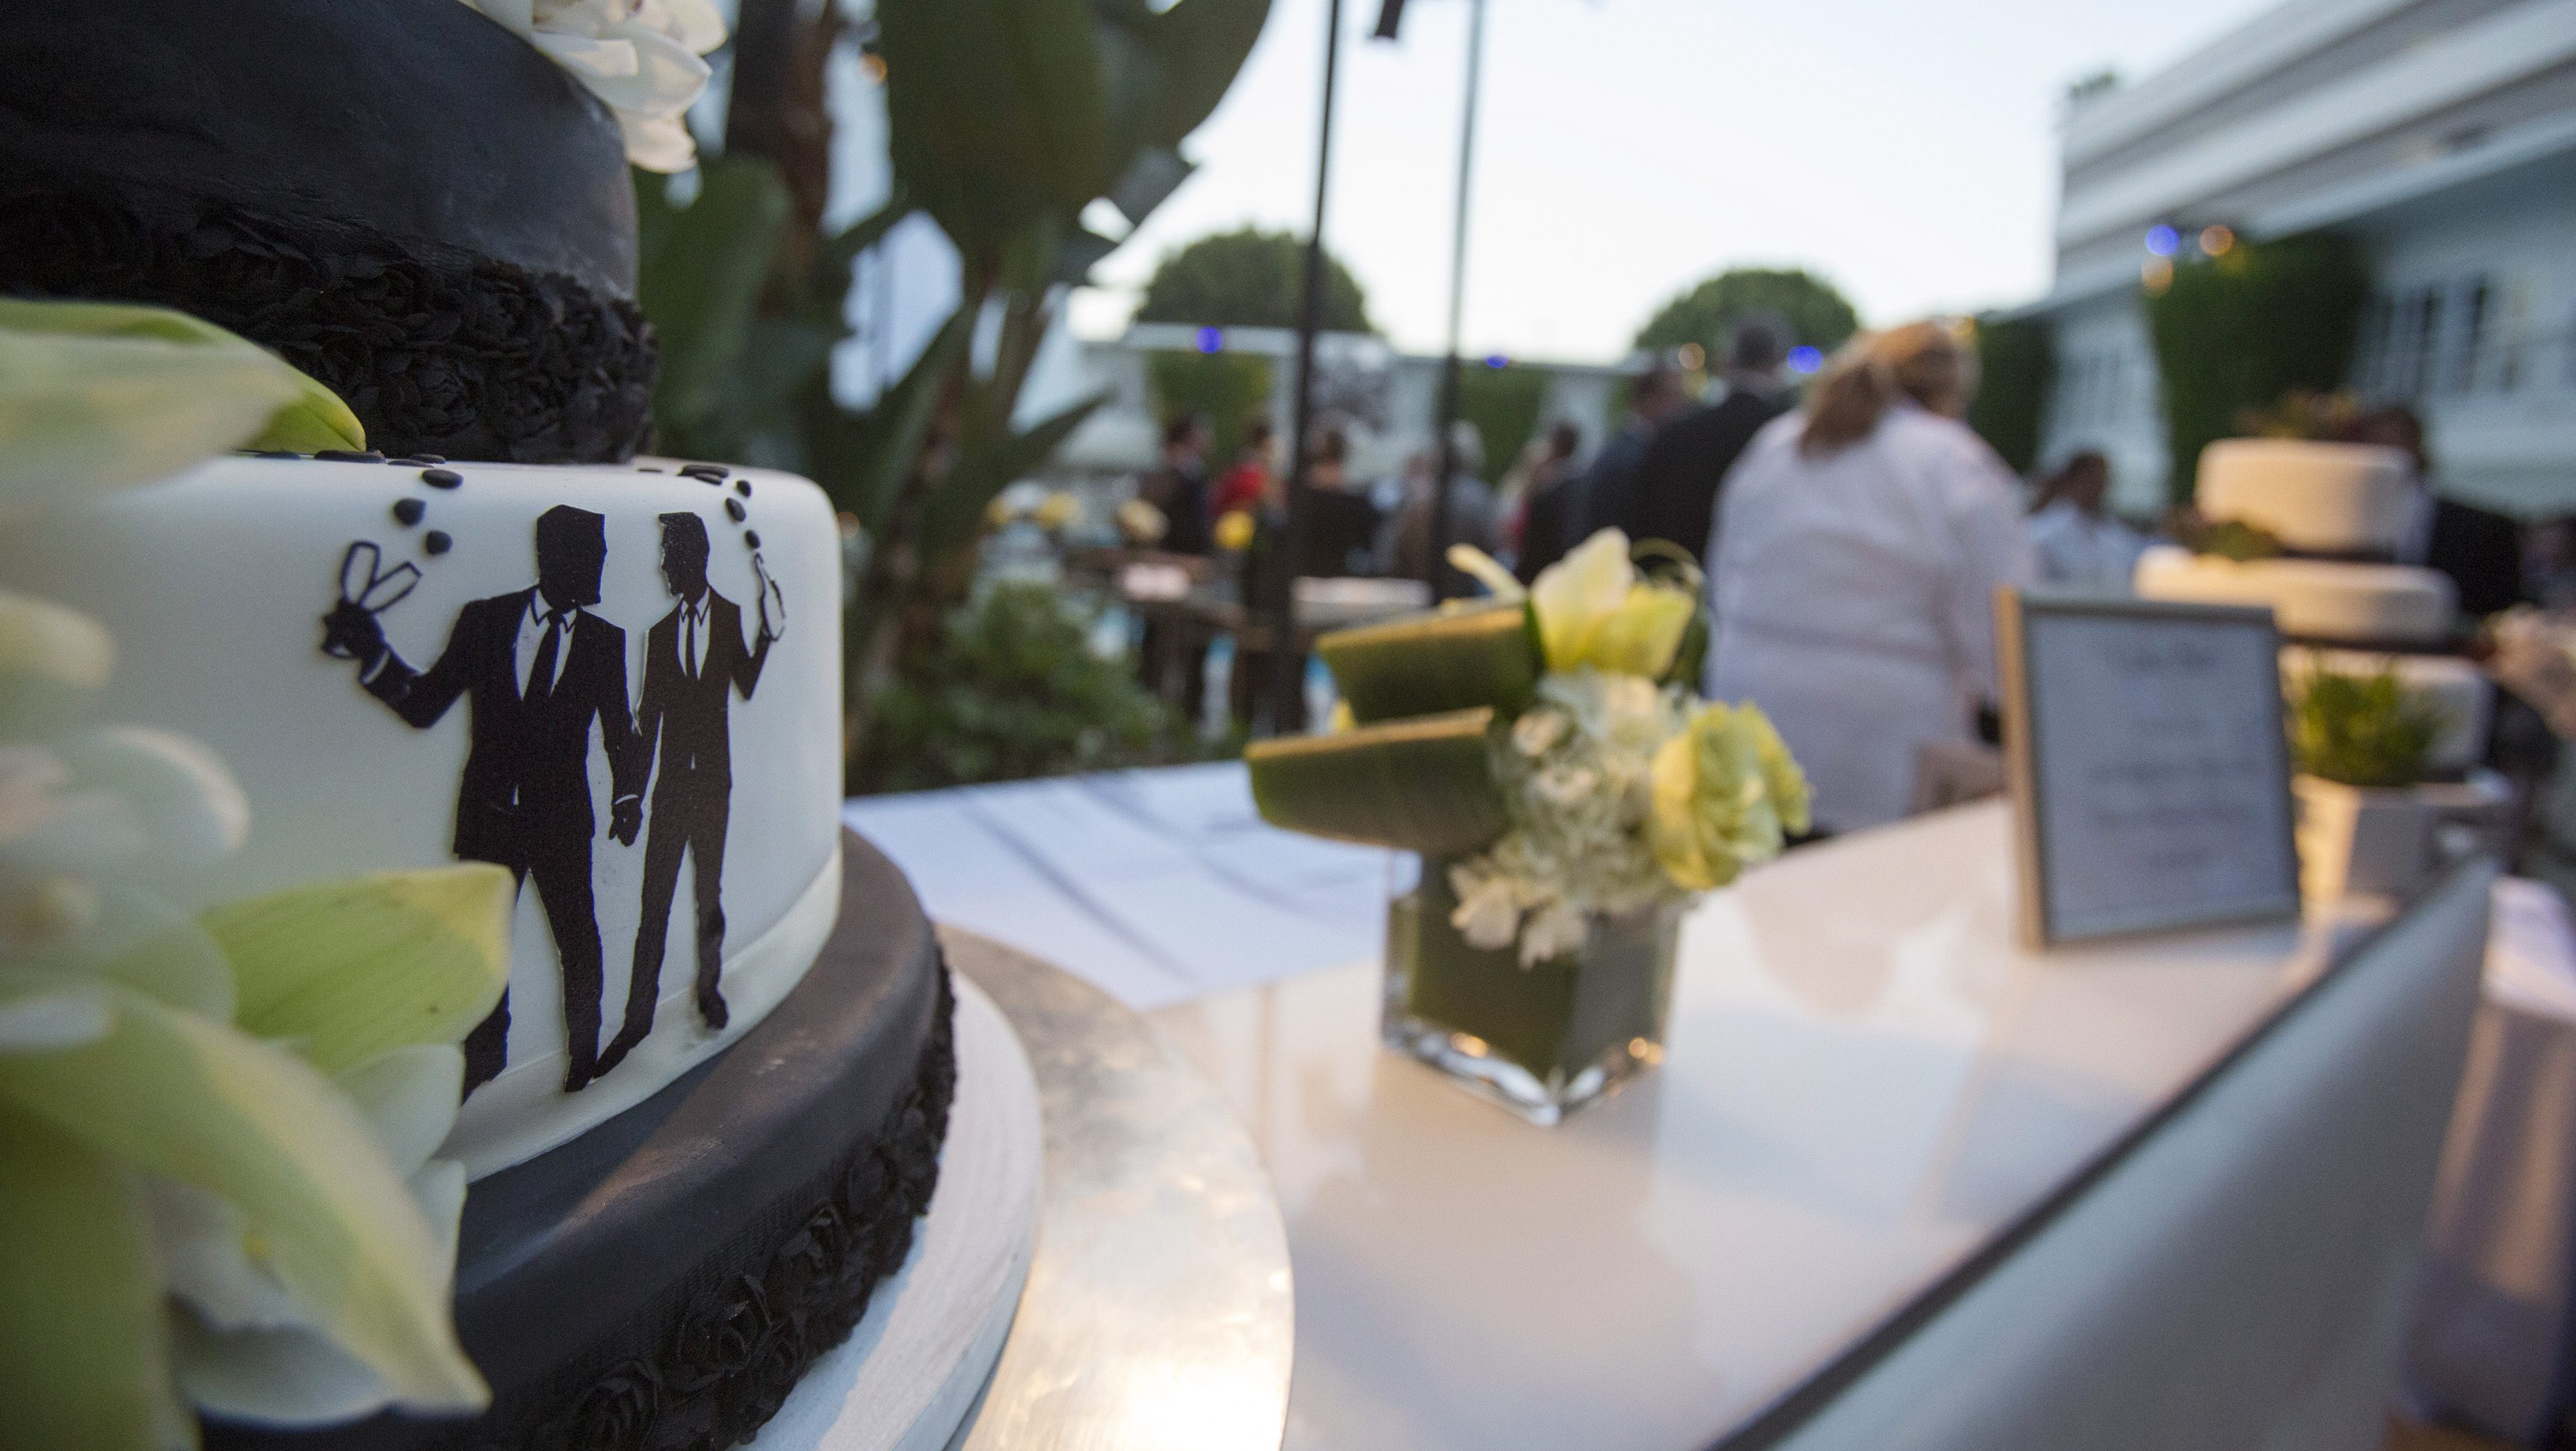 Groom figurines are seen on a cake at a ceremony to celebrate the wedding of Jeff Zarrillo and Paul Katami at Beverly Hilton Hotel in Beverly Hills, California June 28, 2014. A year after becoming among the first same-sex couples to wed legally in California, the two men who were plaintiffs in the case that led to a court overturning the state's five-year ban on gay marriage held a lavish ceremony on Saturday with family and friends including Hollywood stars to celebrate their wedding.  REUTERS/Mario Anzuoni  (UNITED STATES - Tags: SOCIETY ENTERTAINMENT POLITICS) - RTR3W9GU